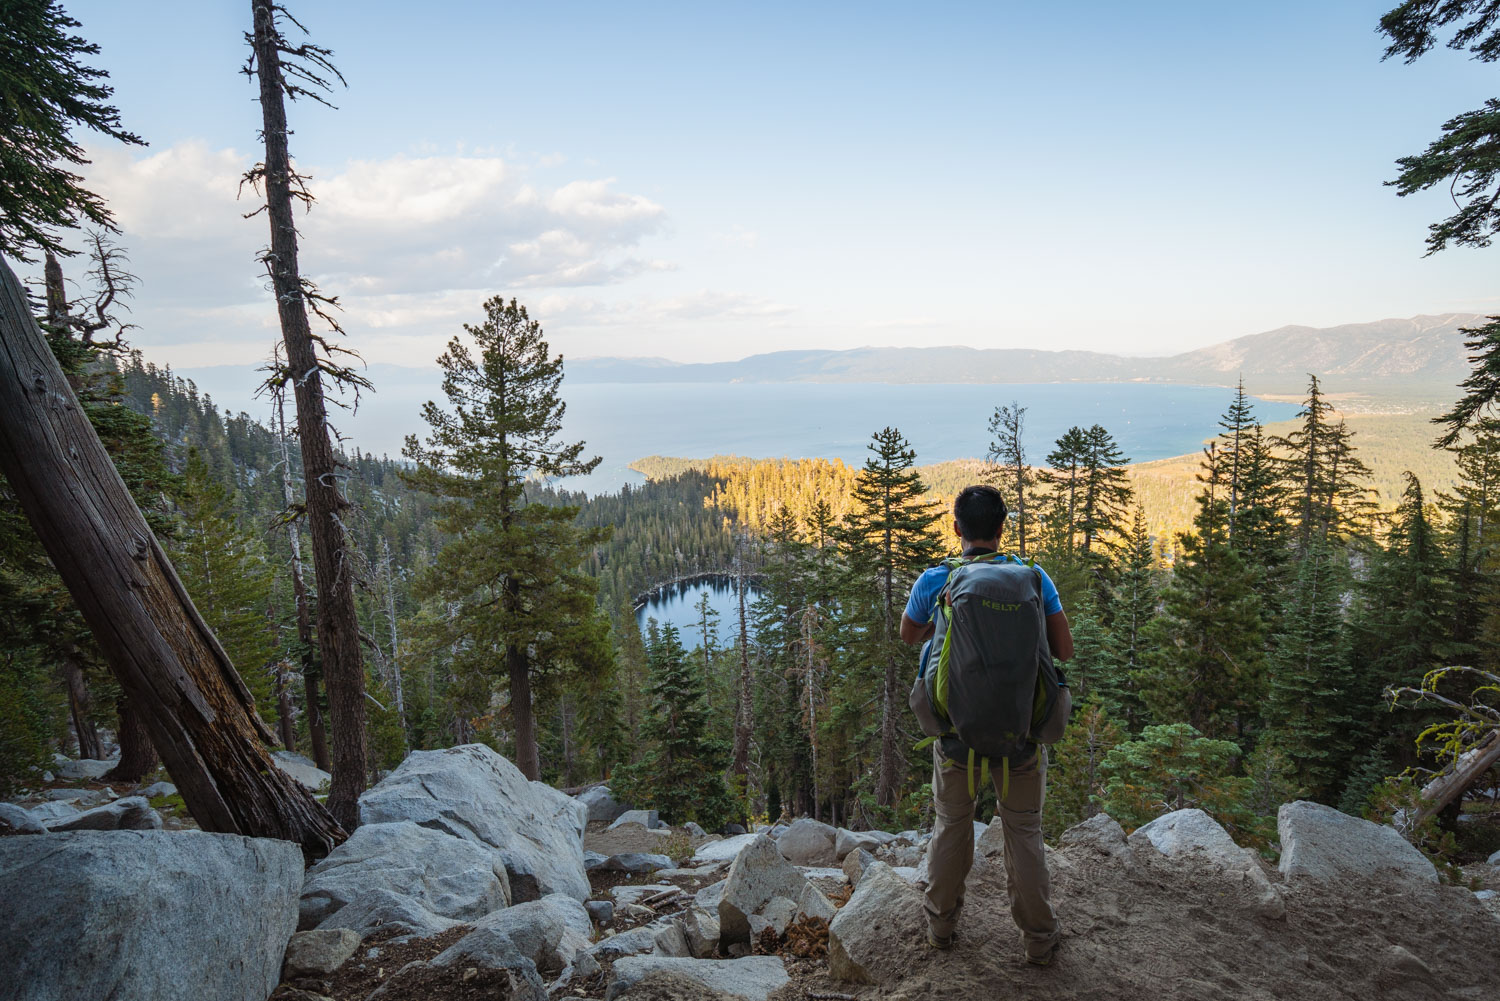 Views of the greater Tahoe area